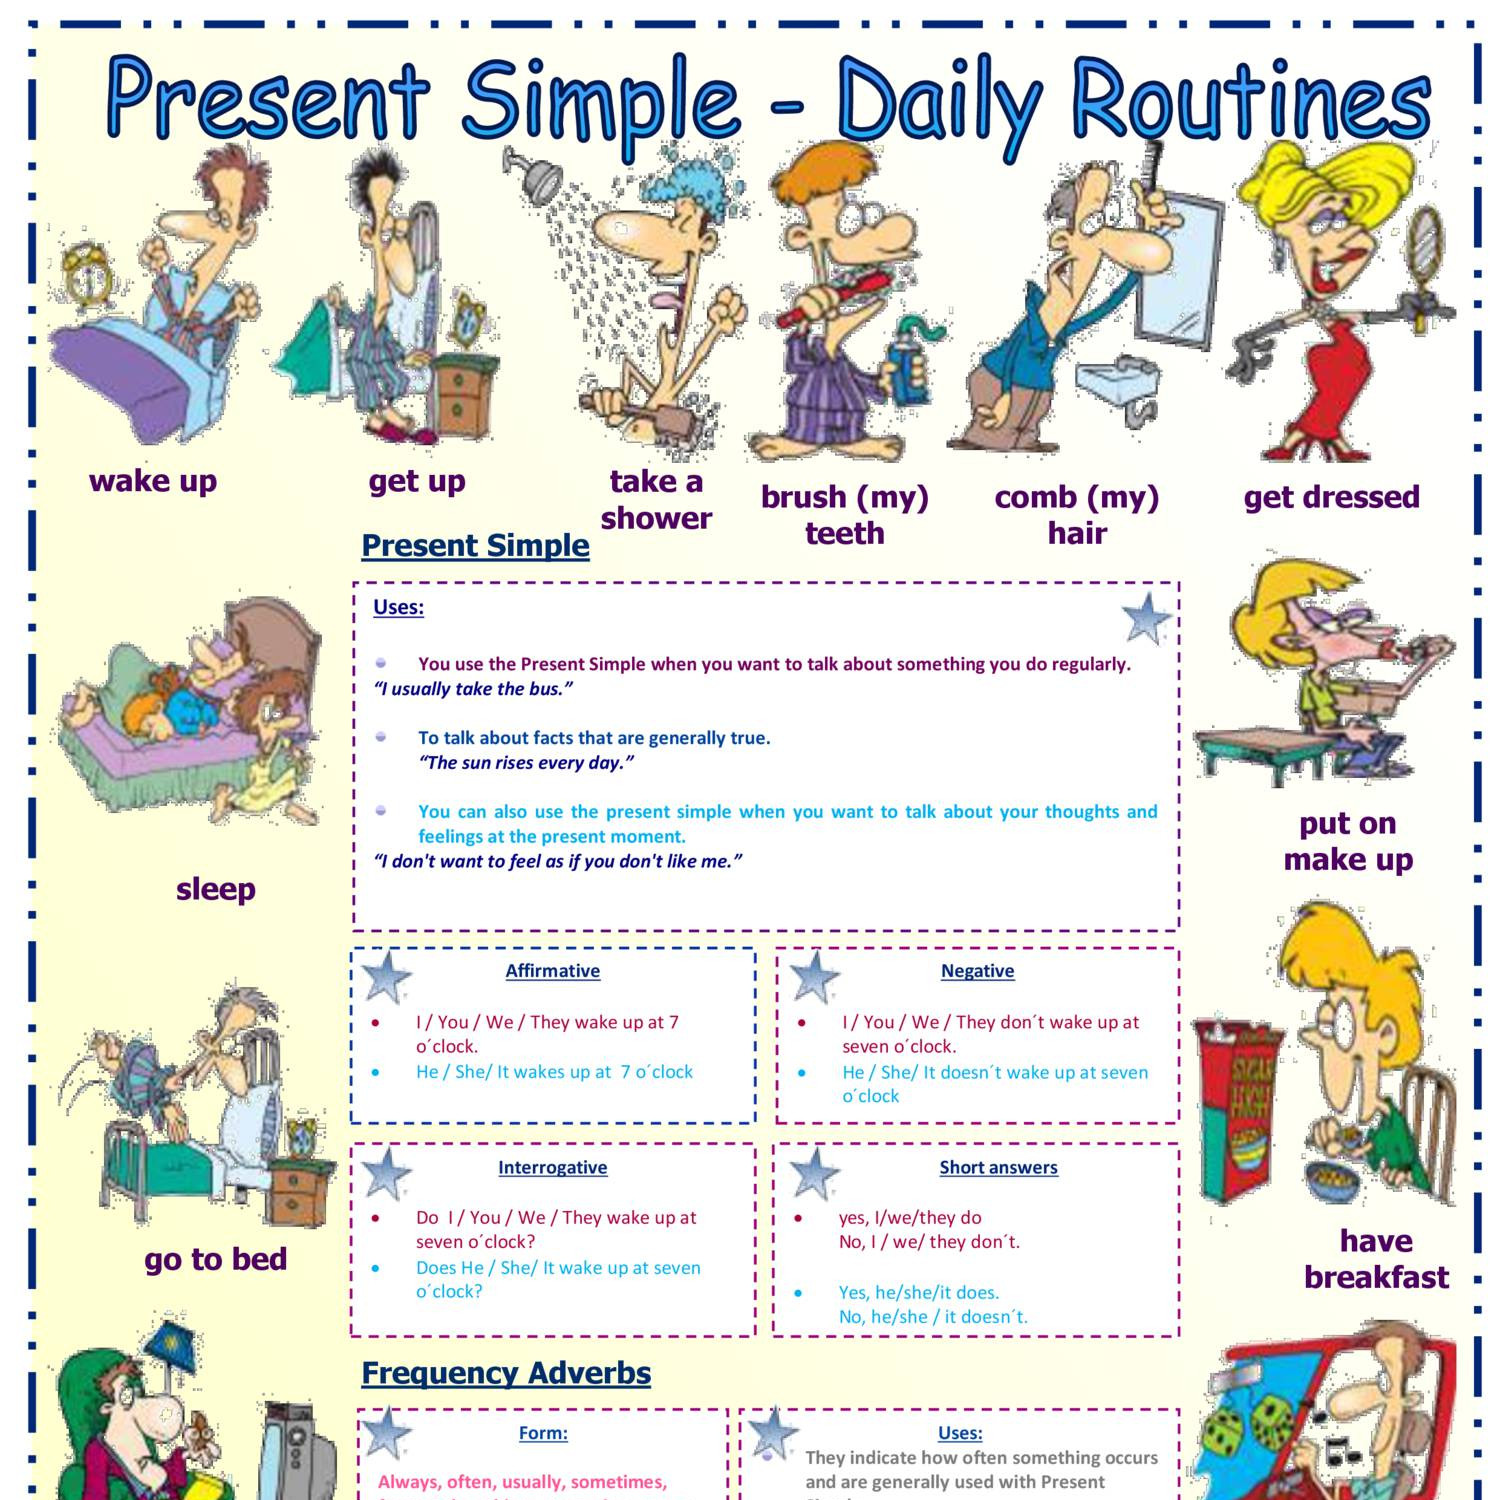 Present Simple Daily Routines Frequency Adverbs 1